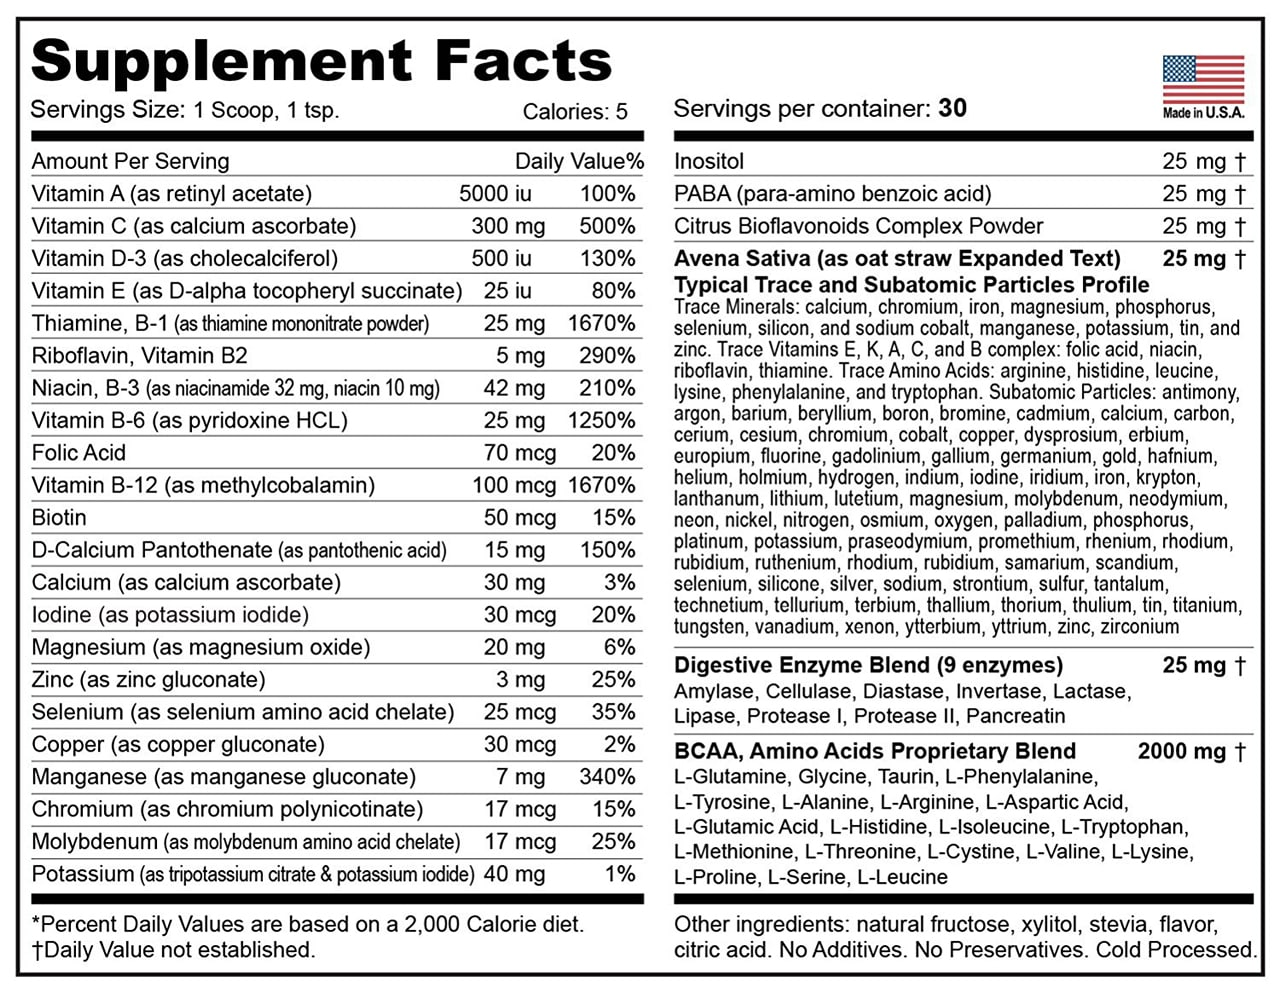 TRUFORMULA Supplement Facts